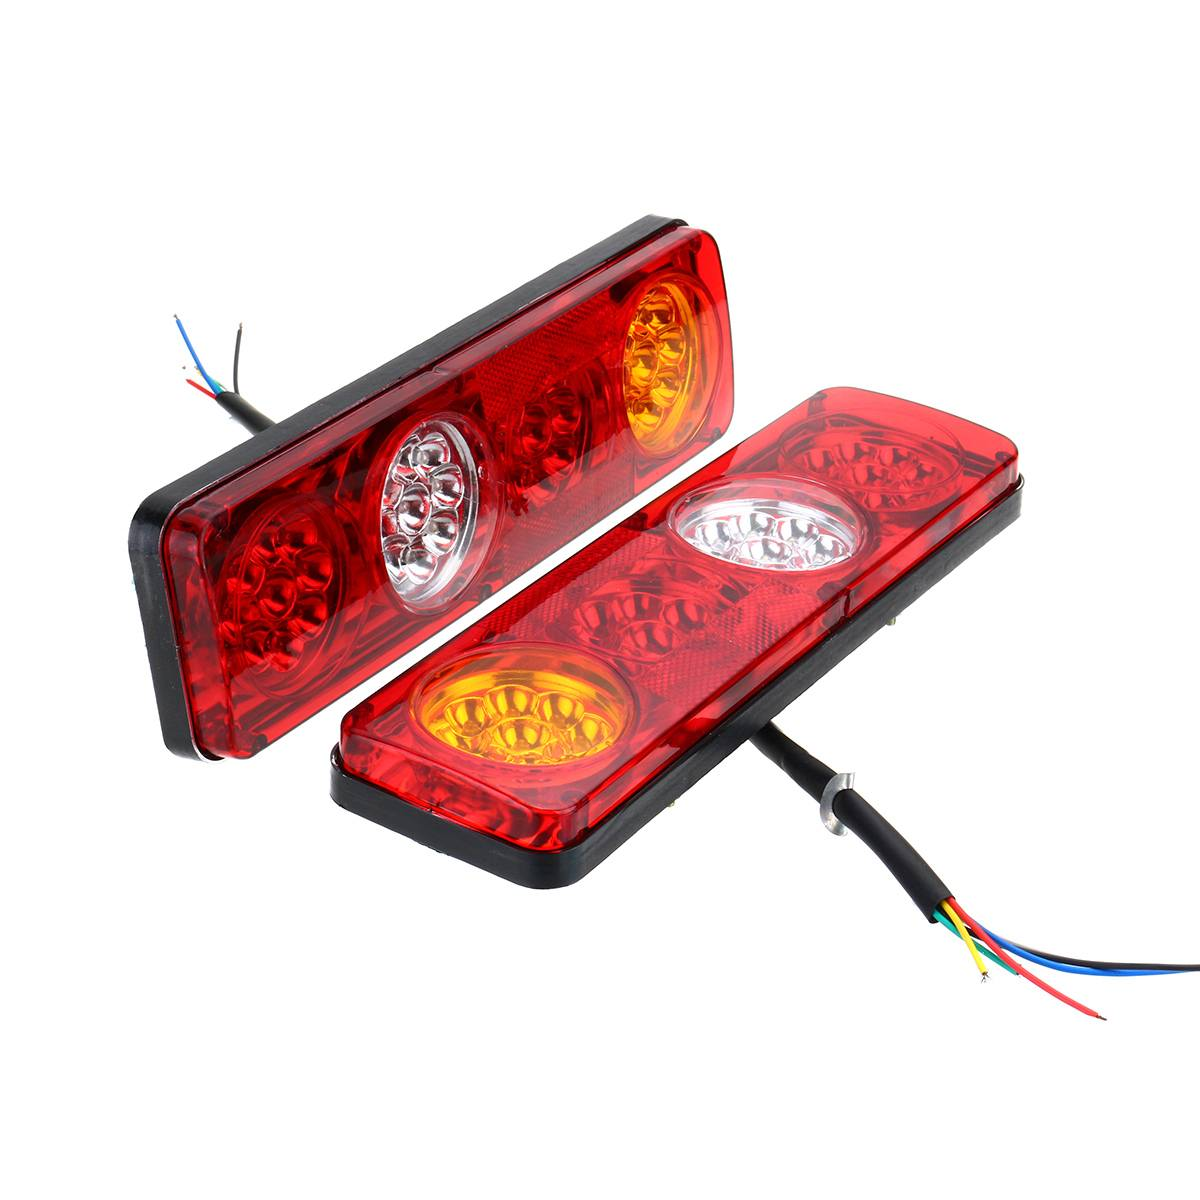 36 LED 24V LED Waterproof Car Rear Tail Lights Lamp Brake Stop Light for Trailer Caravan Truck Lorry